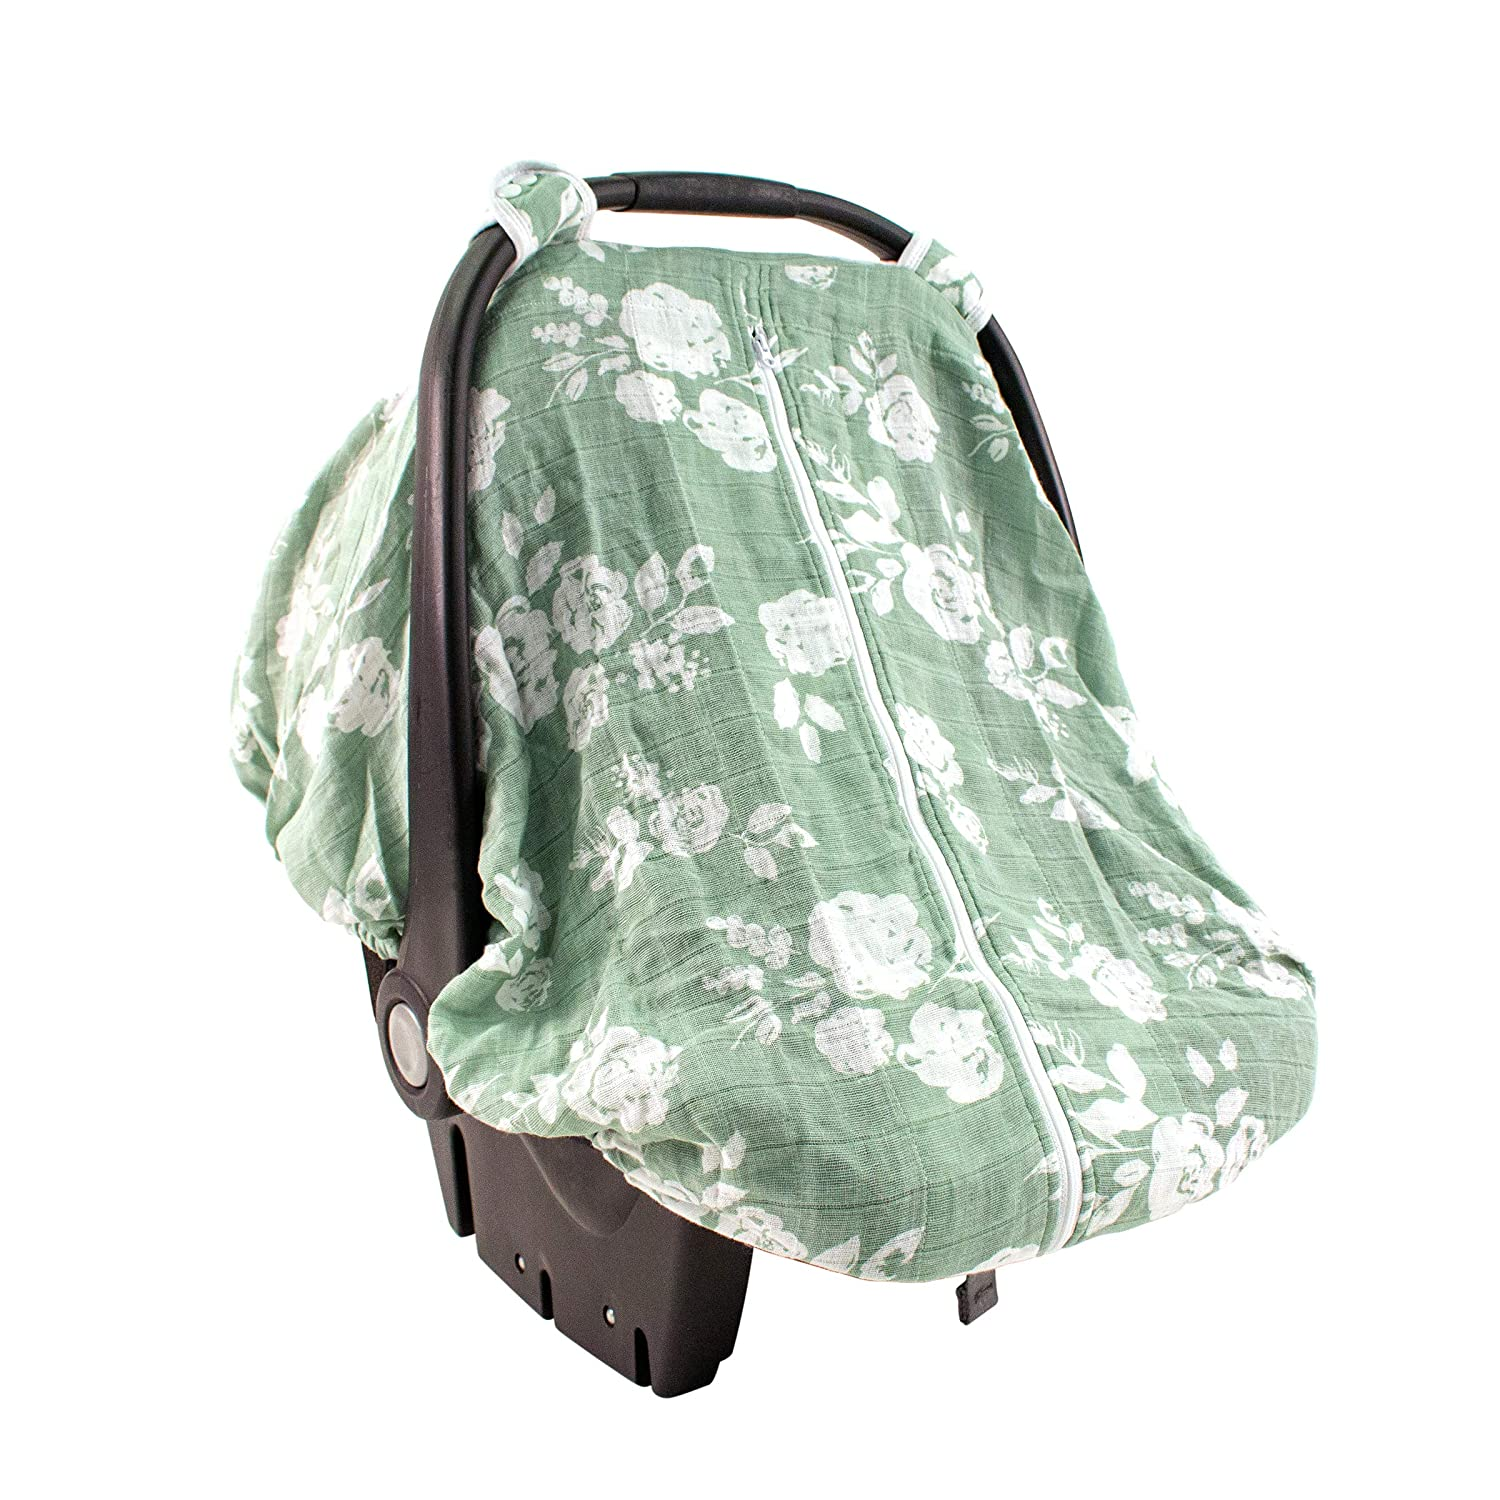 Bebe au Lait Classic Muslin Car Seat Cover, Easy Snap Straps, Fully Zippered Opening - Vintage Floral